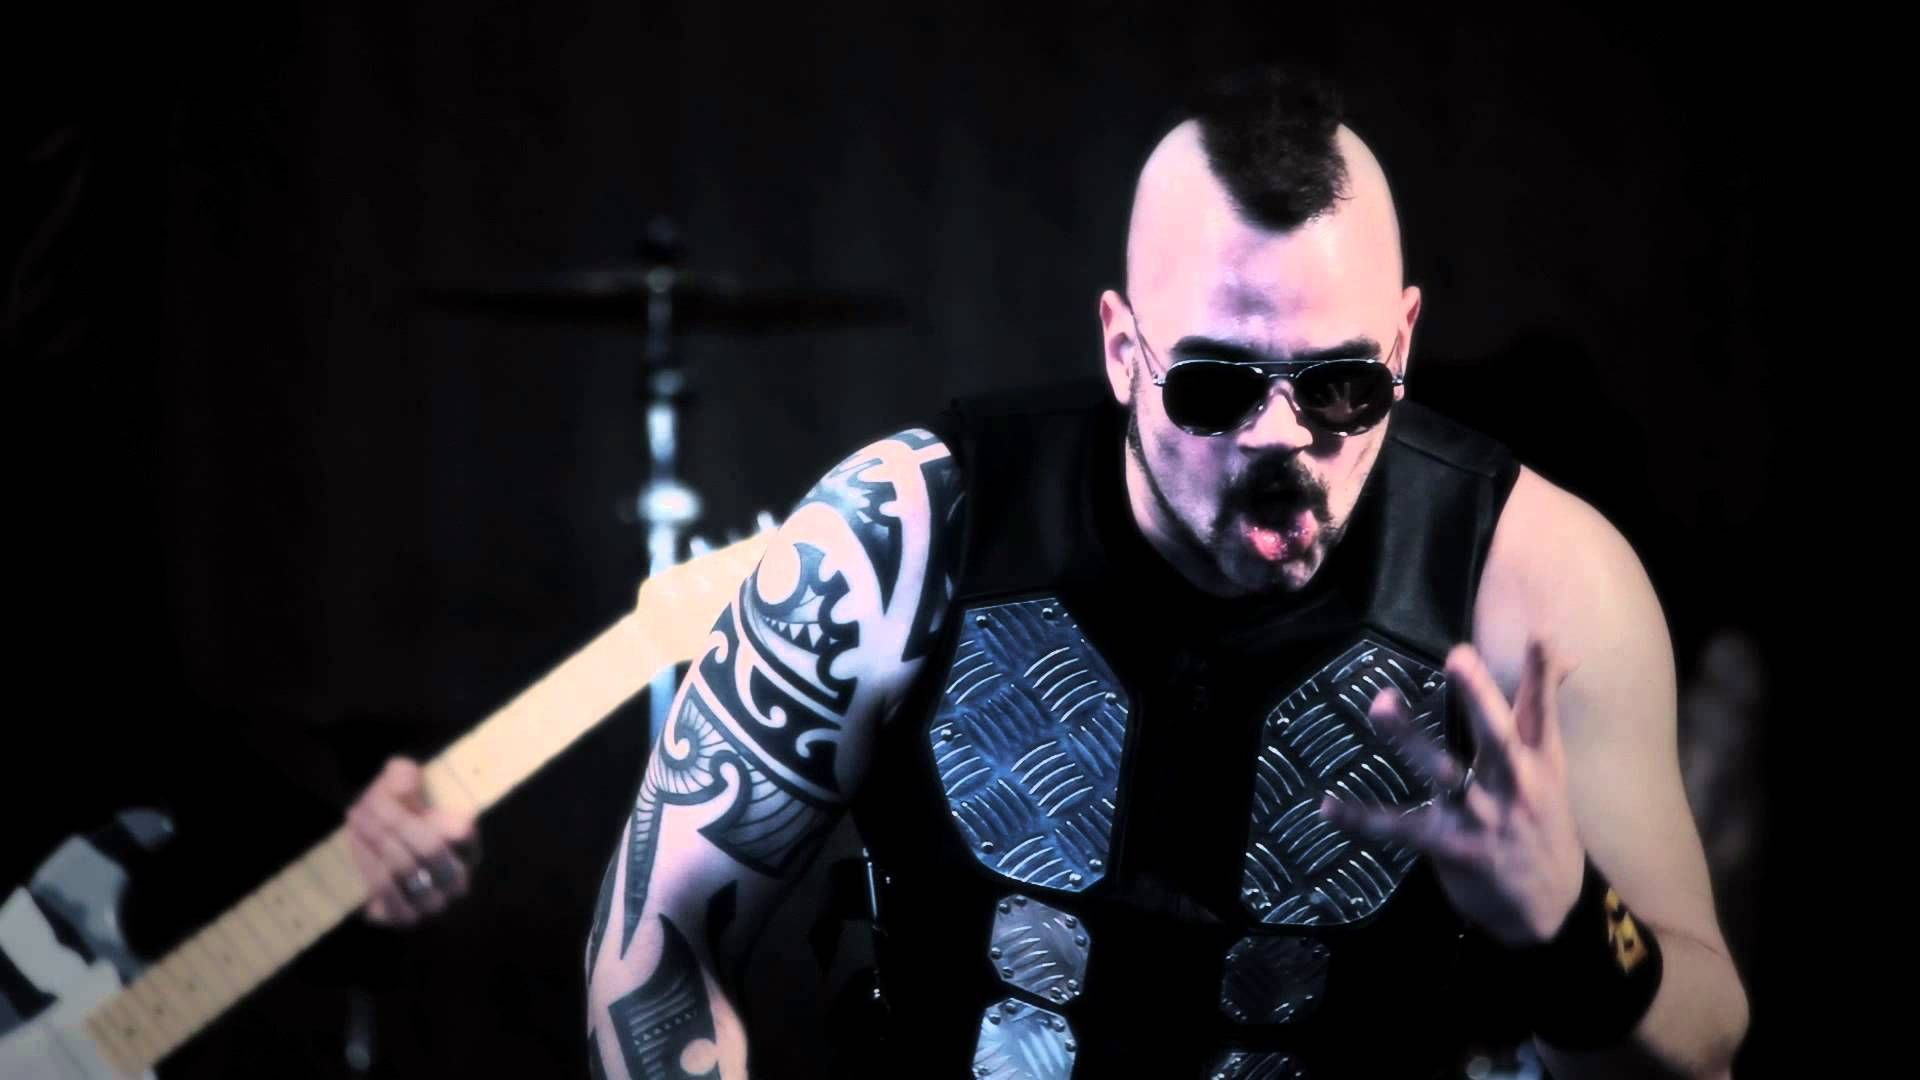 Sabaton - To Hell & Back (Official Video)